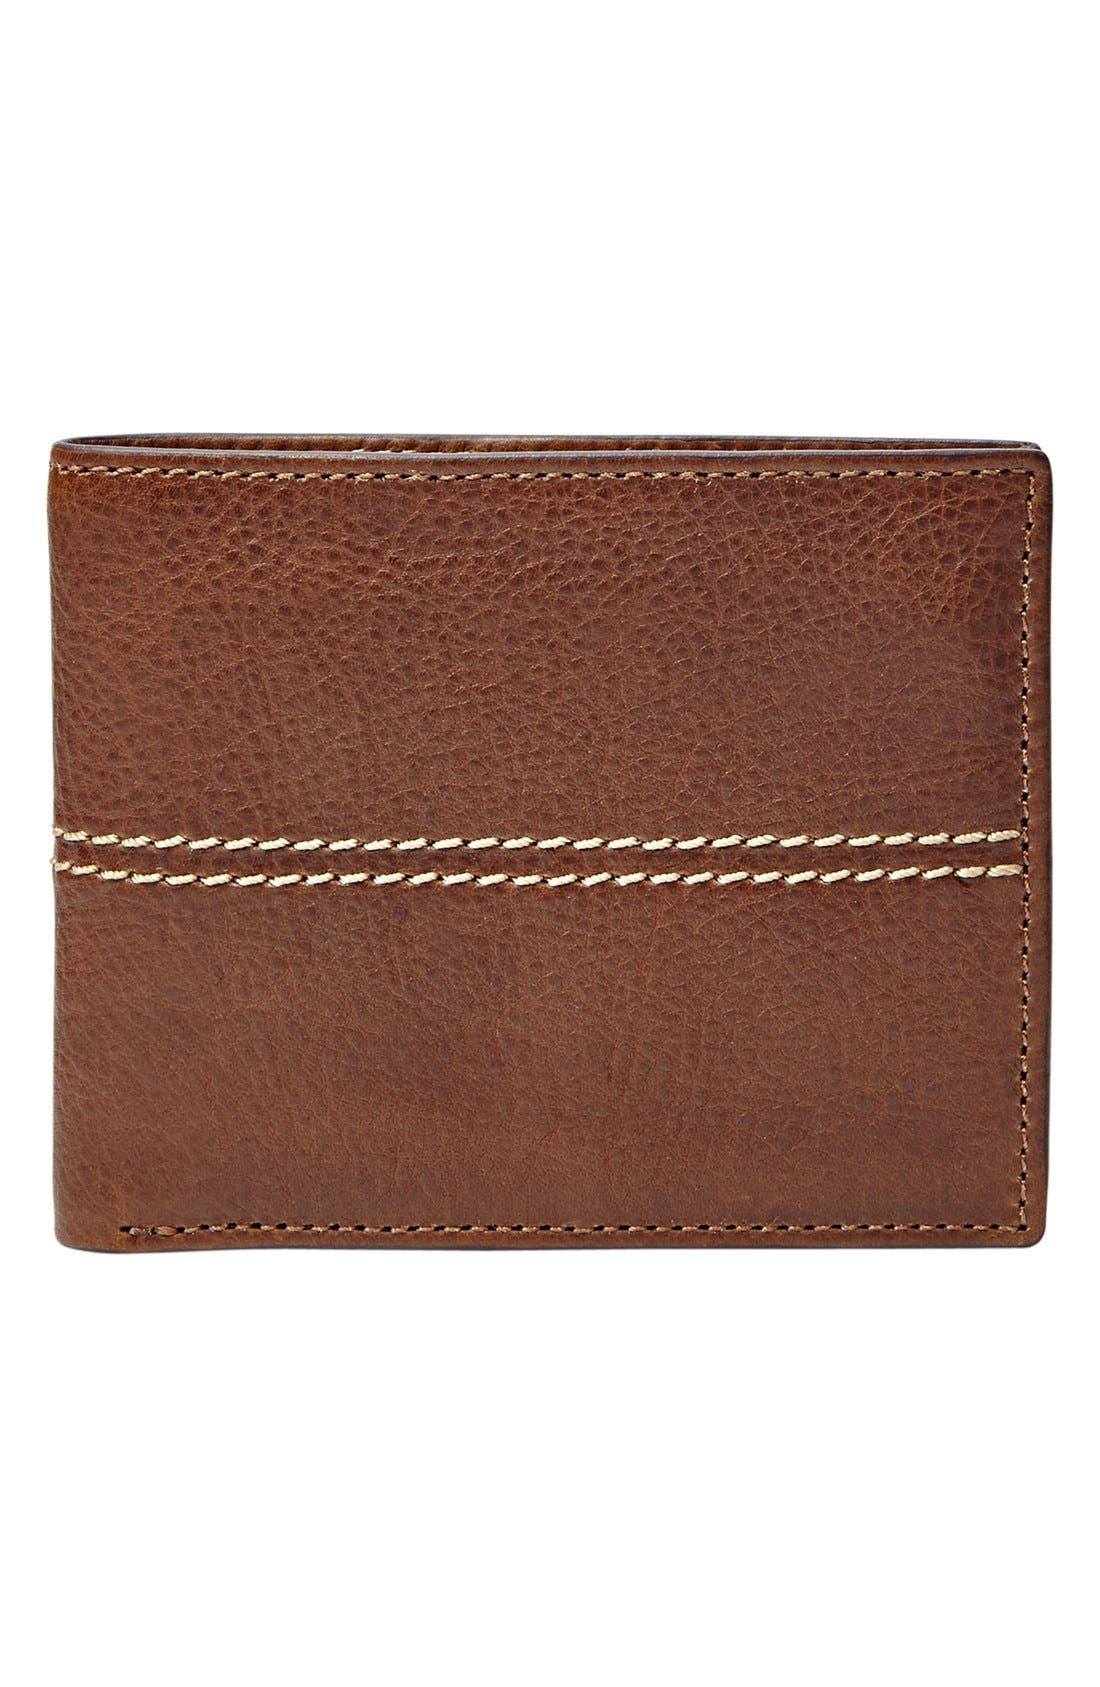 Fossil 'Turk' Leather RFID Wallet